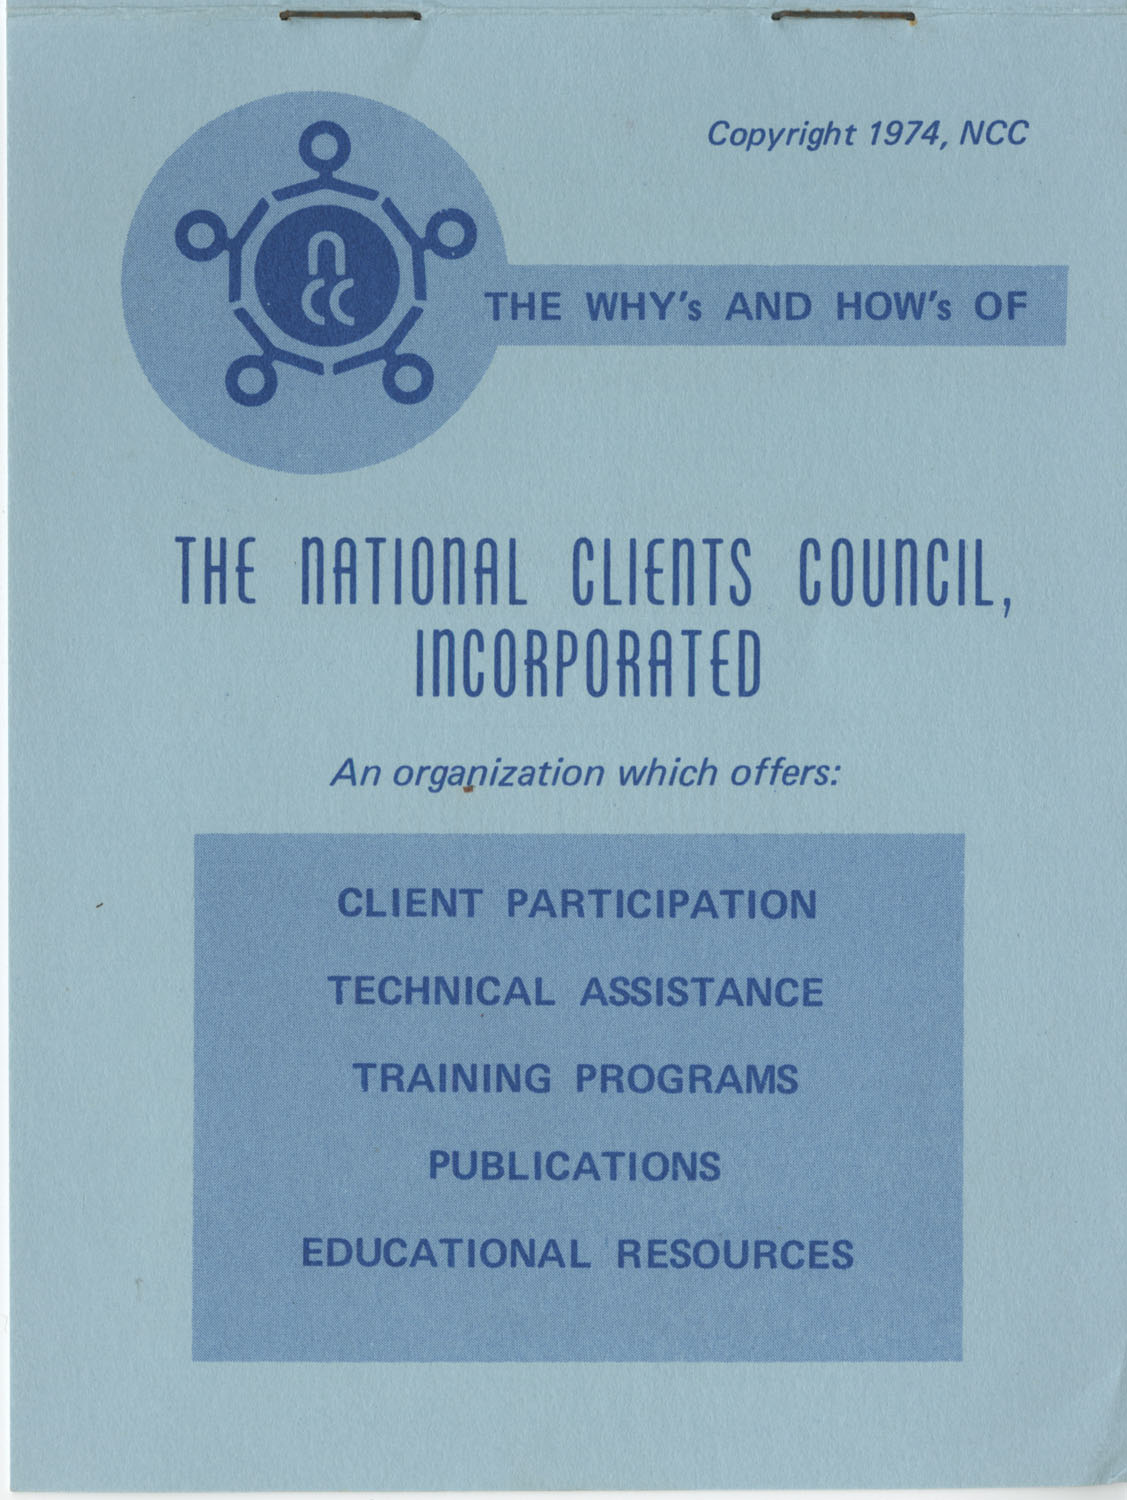 The Why's and How's of The National Clients Council, 1974, Cover